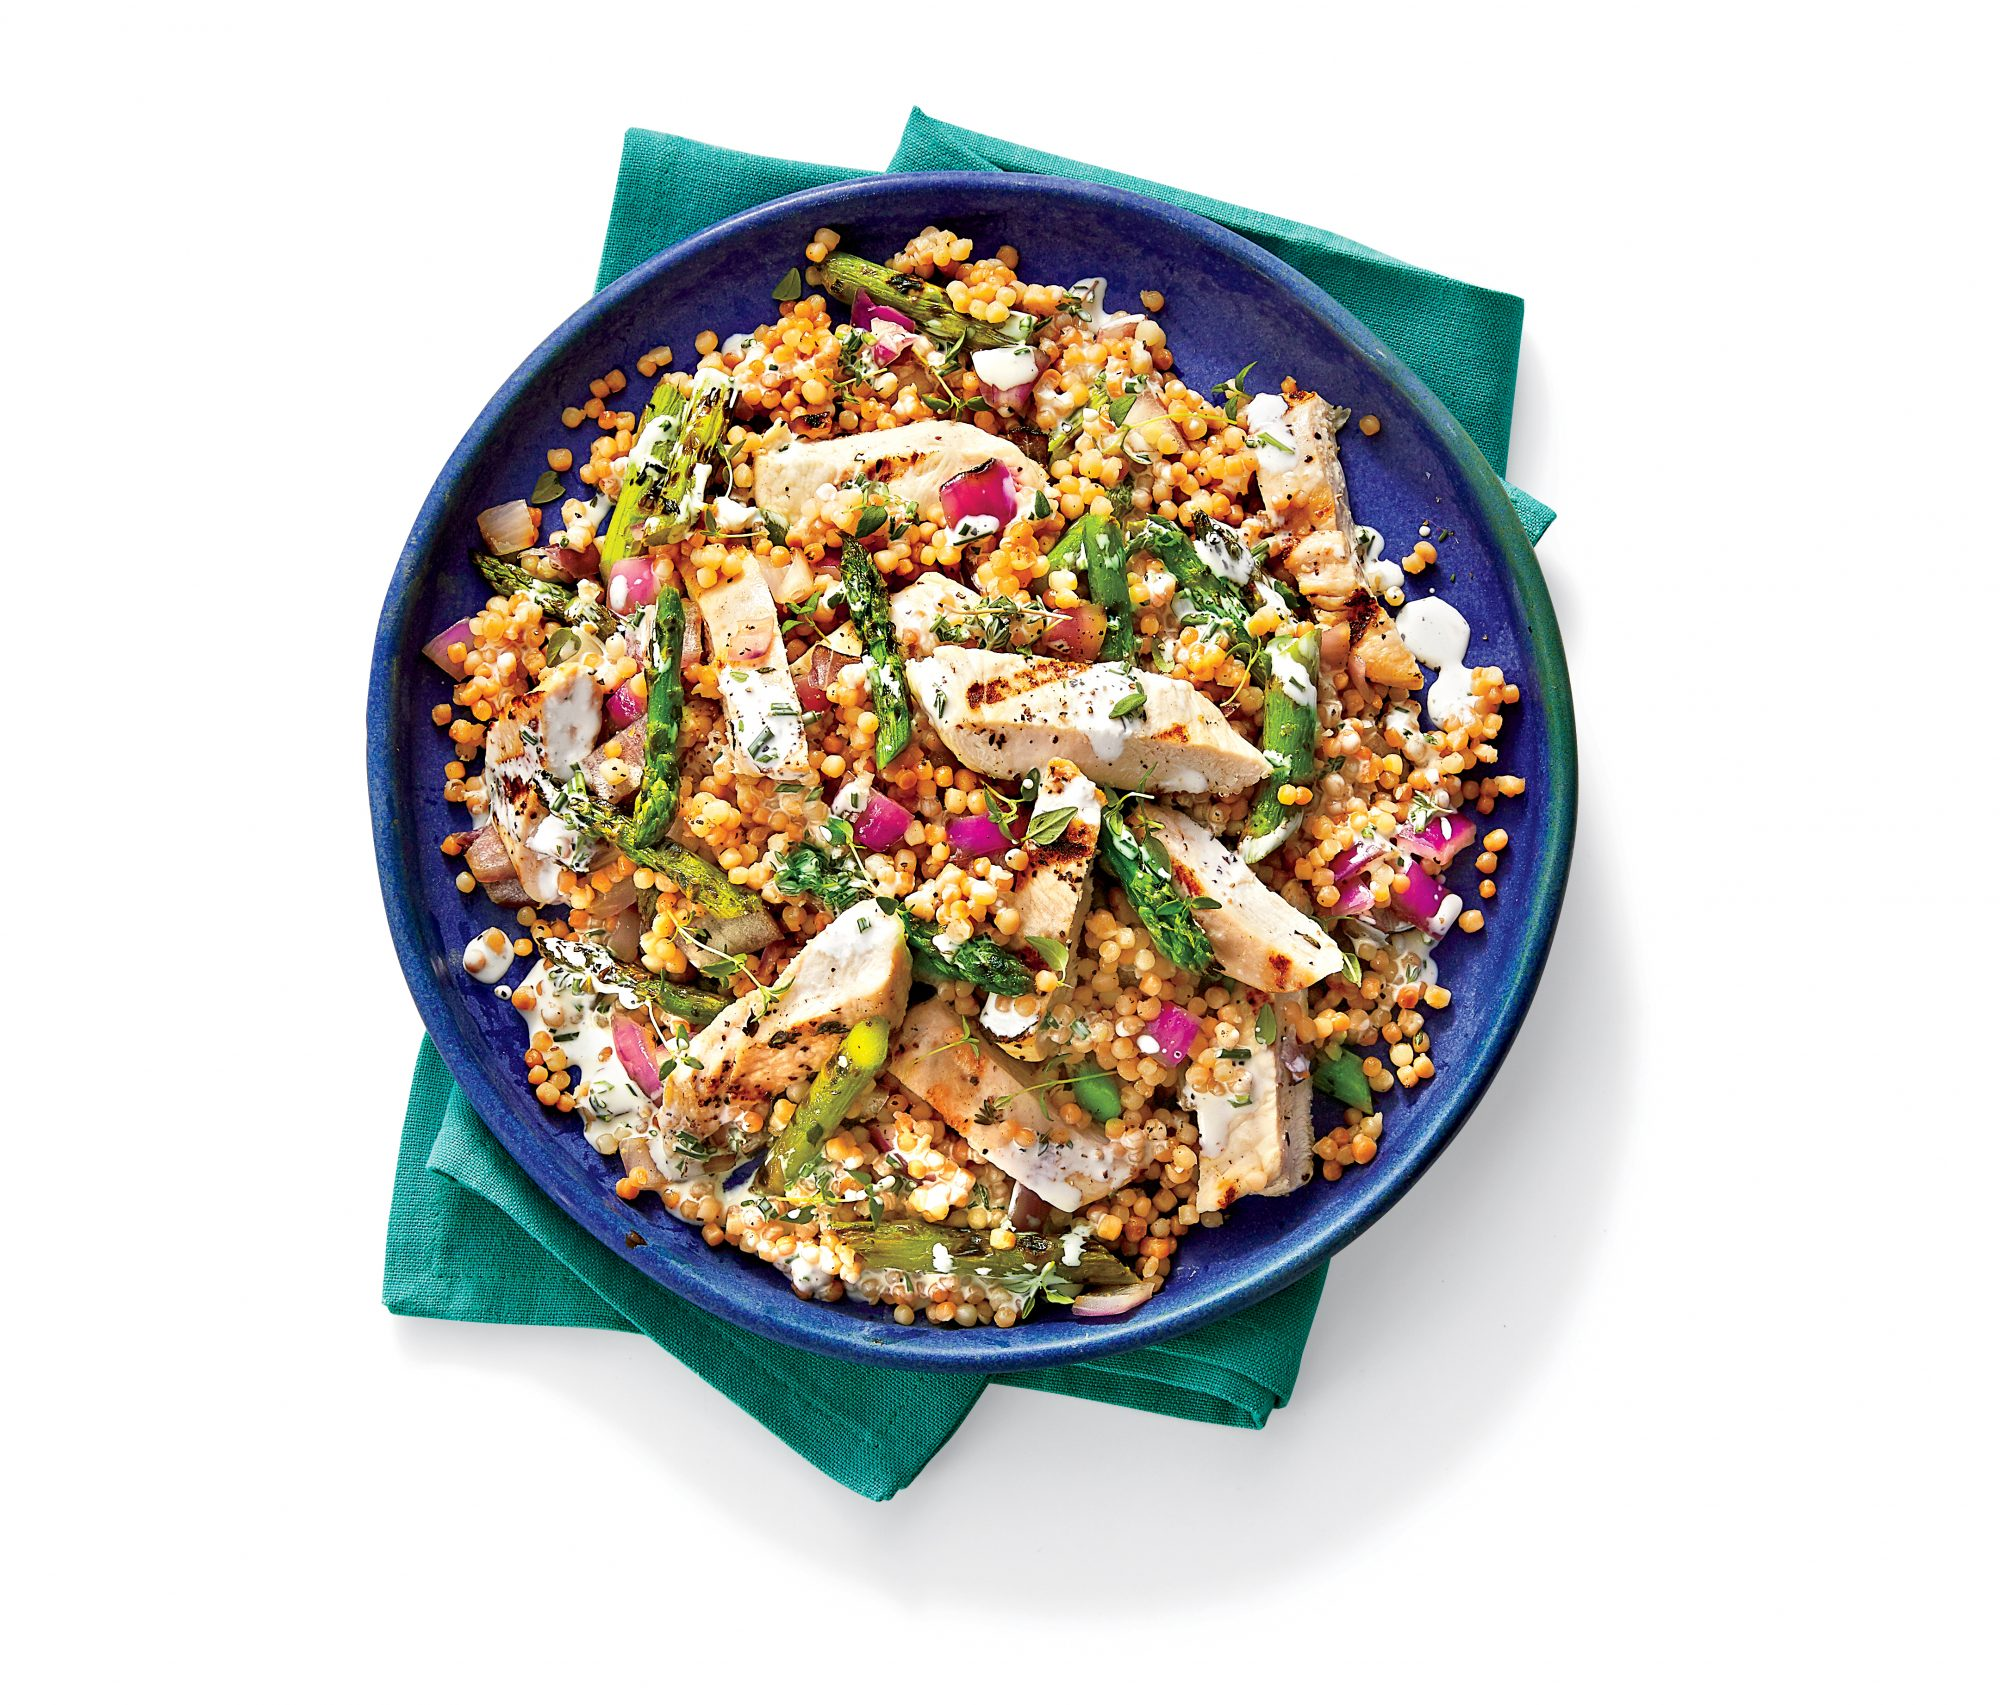 Grilled Chicken And Toasted Couscous Salad With Lemon Buttermilk Dressing